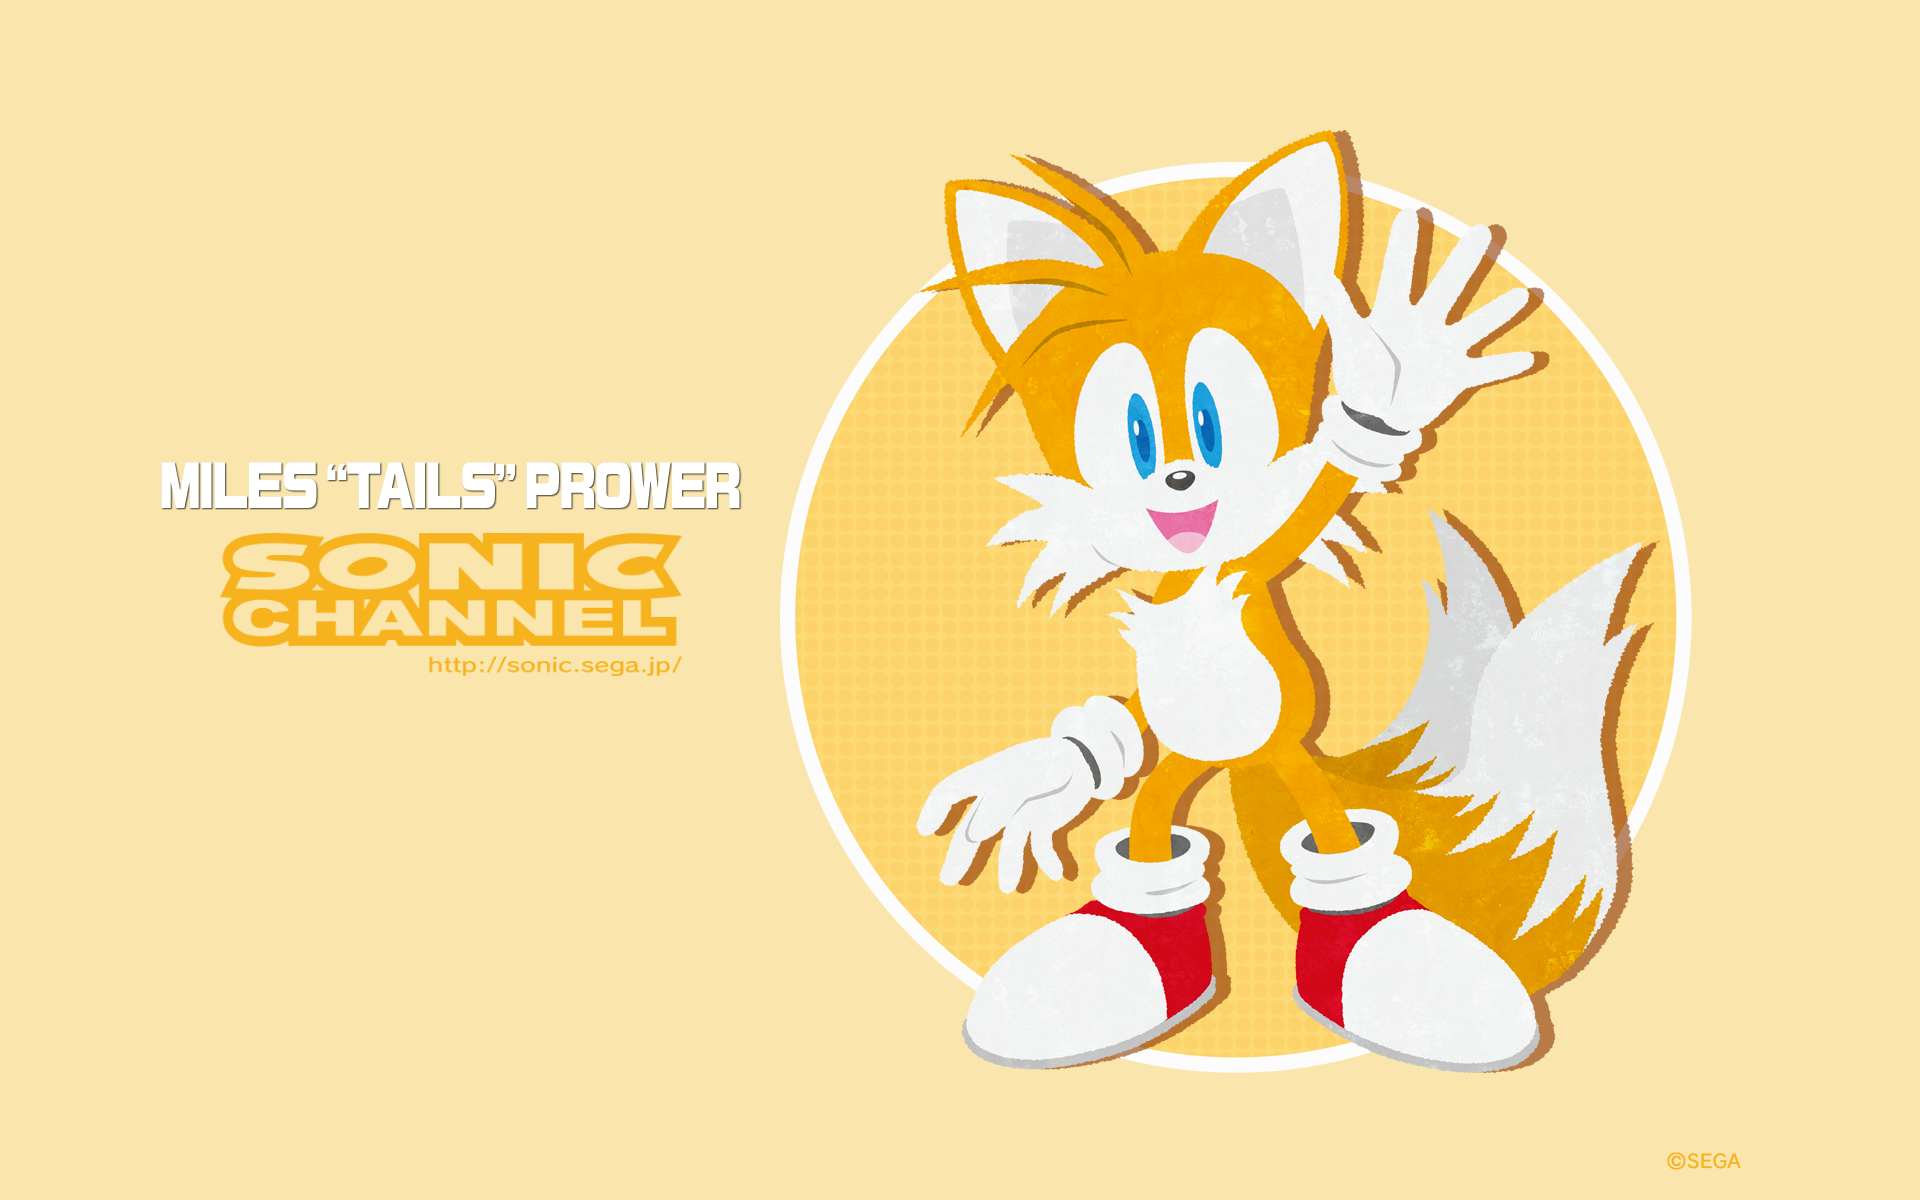 http://sonic.sega.jp/SonicChannel/enjoy/image/wallpaper_147_tails_11_pc.png